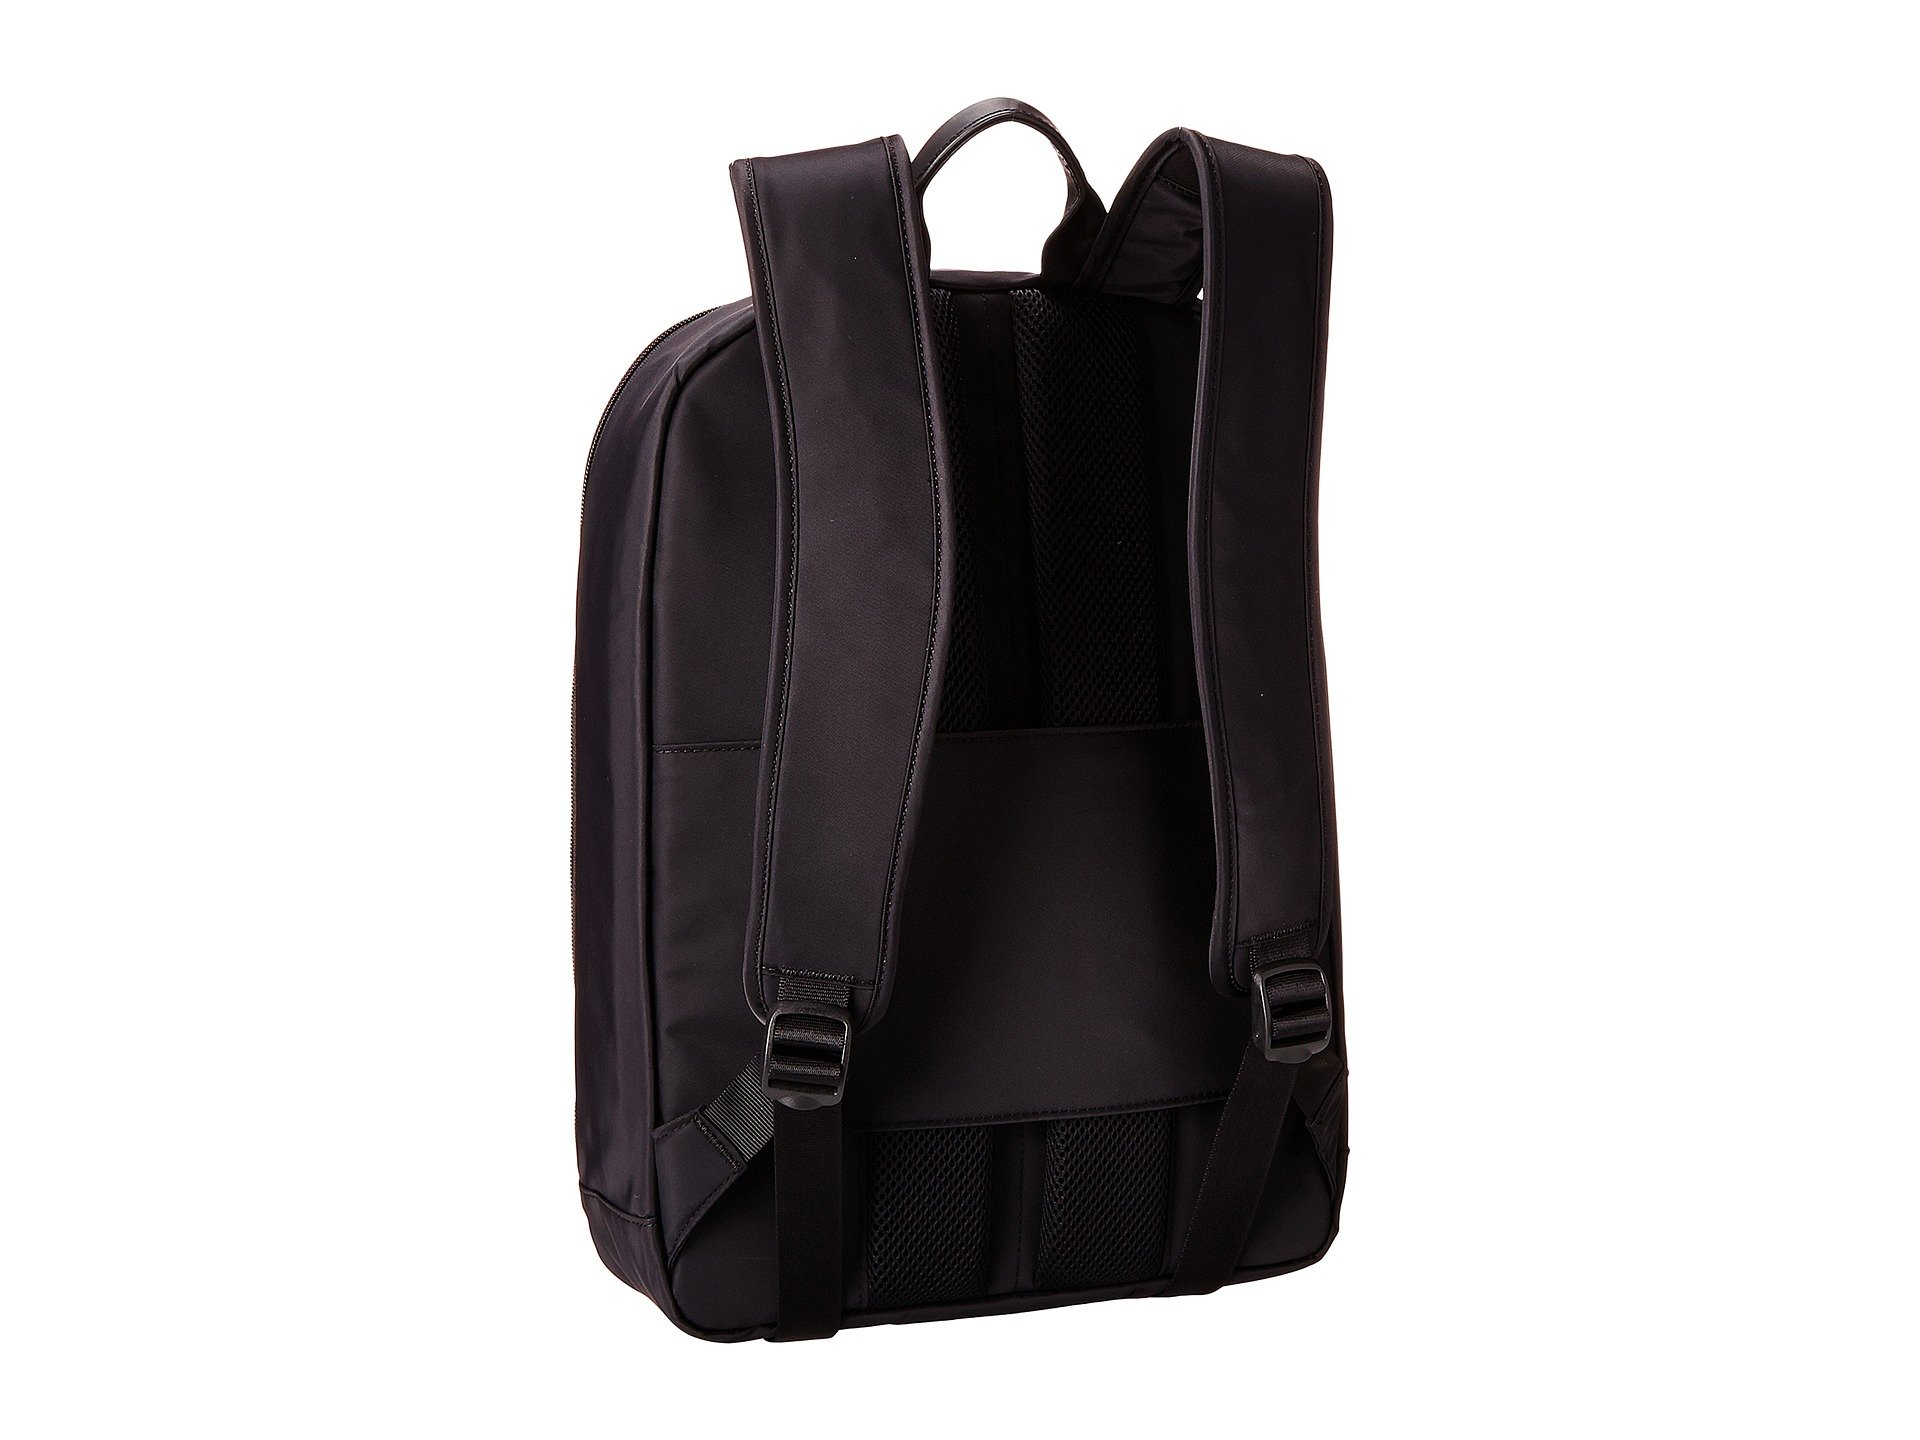 Briggs amp; Riley Sympatico Black Backpack UpCPvXp